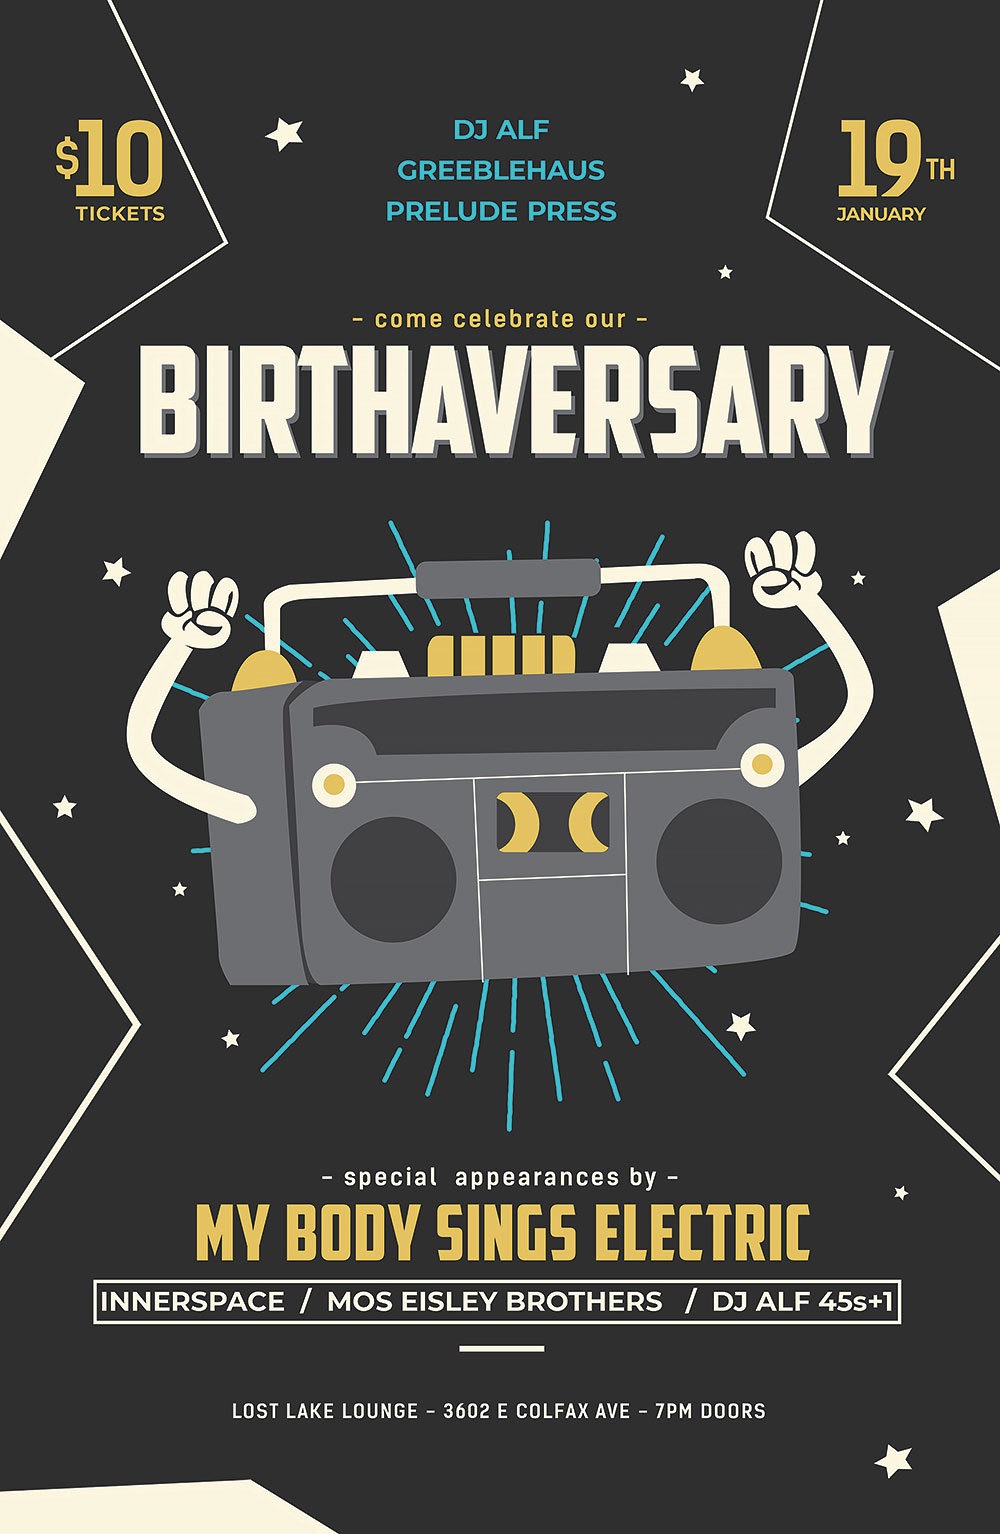 Greeblehaus Birthaversary with My Body Sings Electric